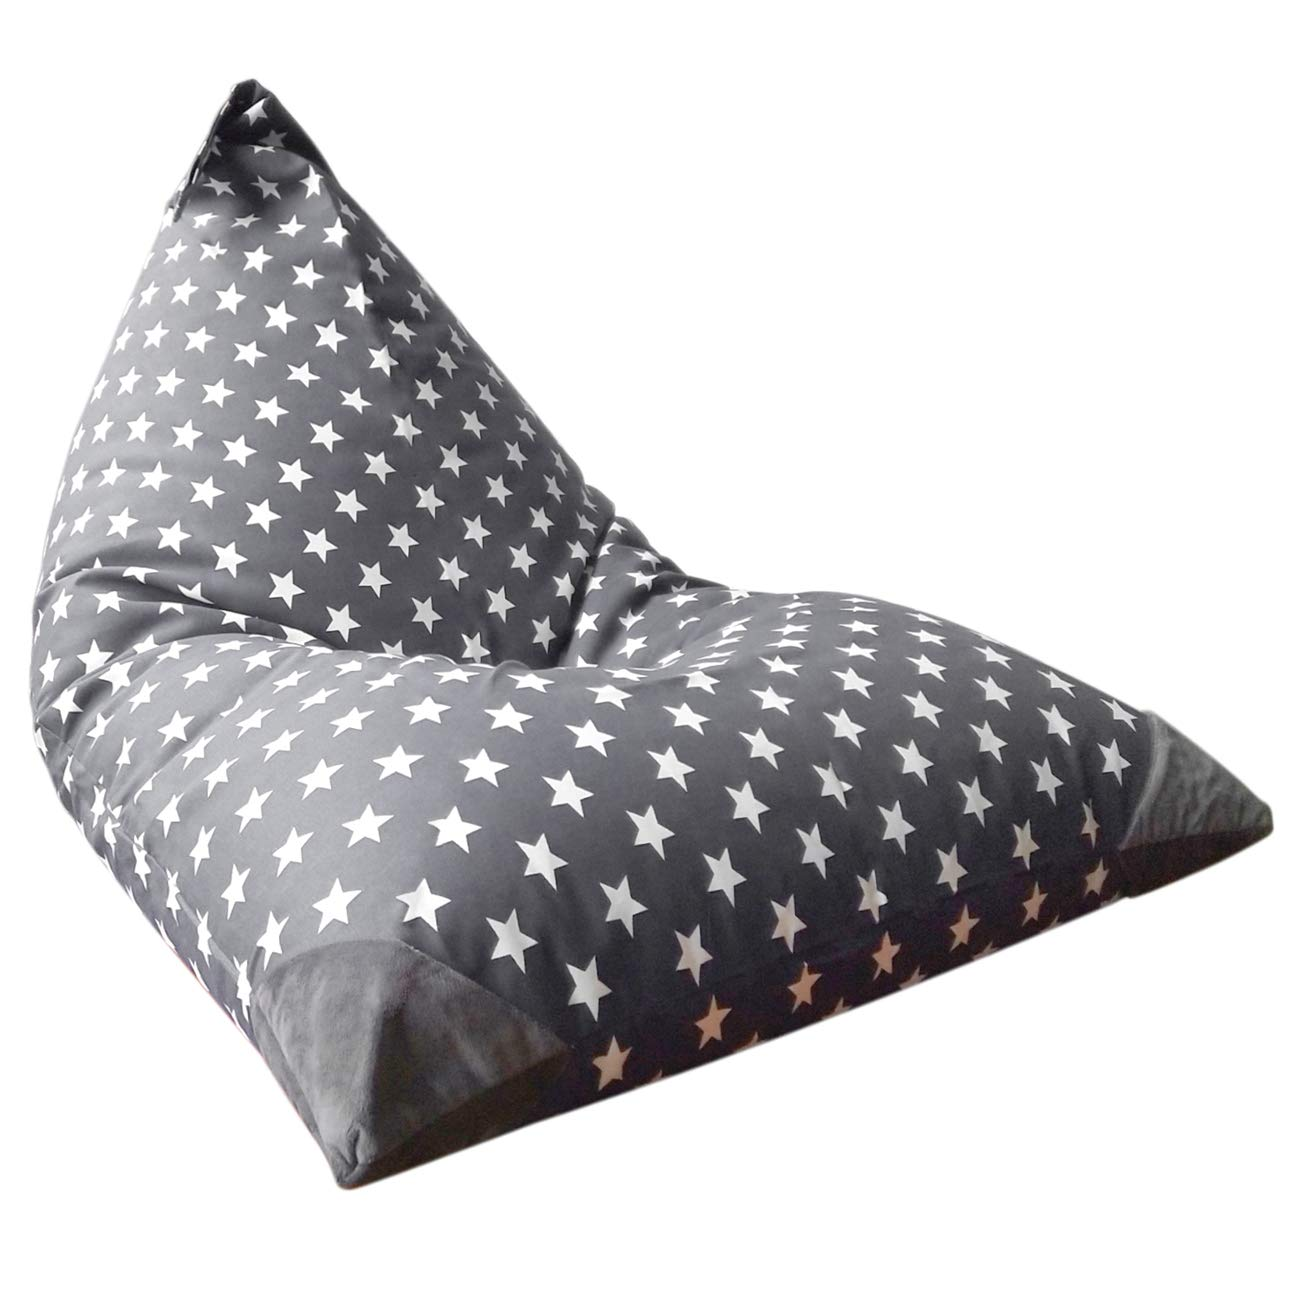 Stuffed Animal Storage Bean Bag Chair for Kids and Adults. Premium Canvas Stuffie Seat - Cover ONLY (Grey with White Stars 200L/52 Gal)